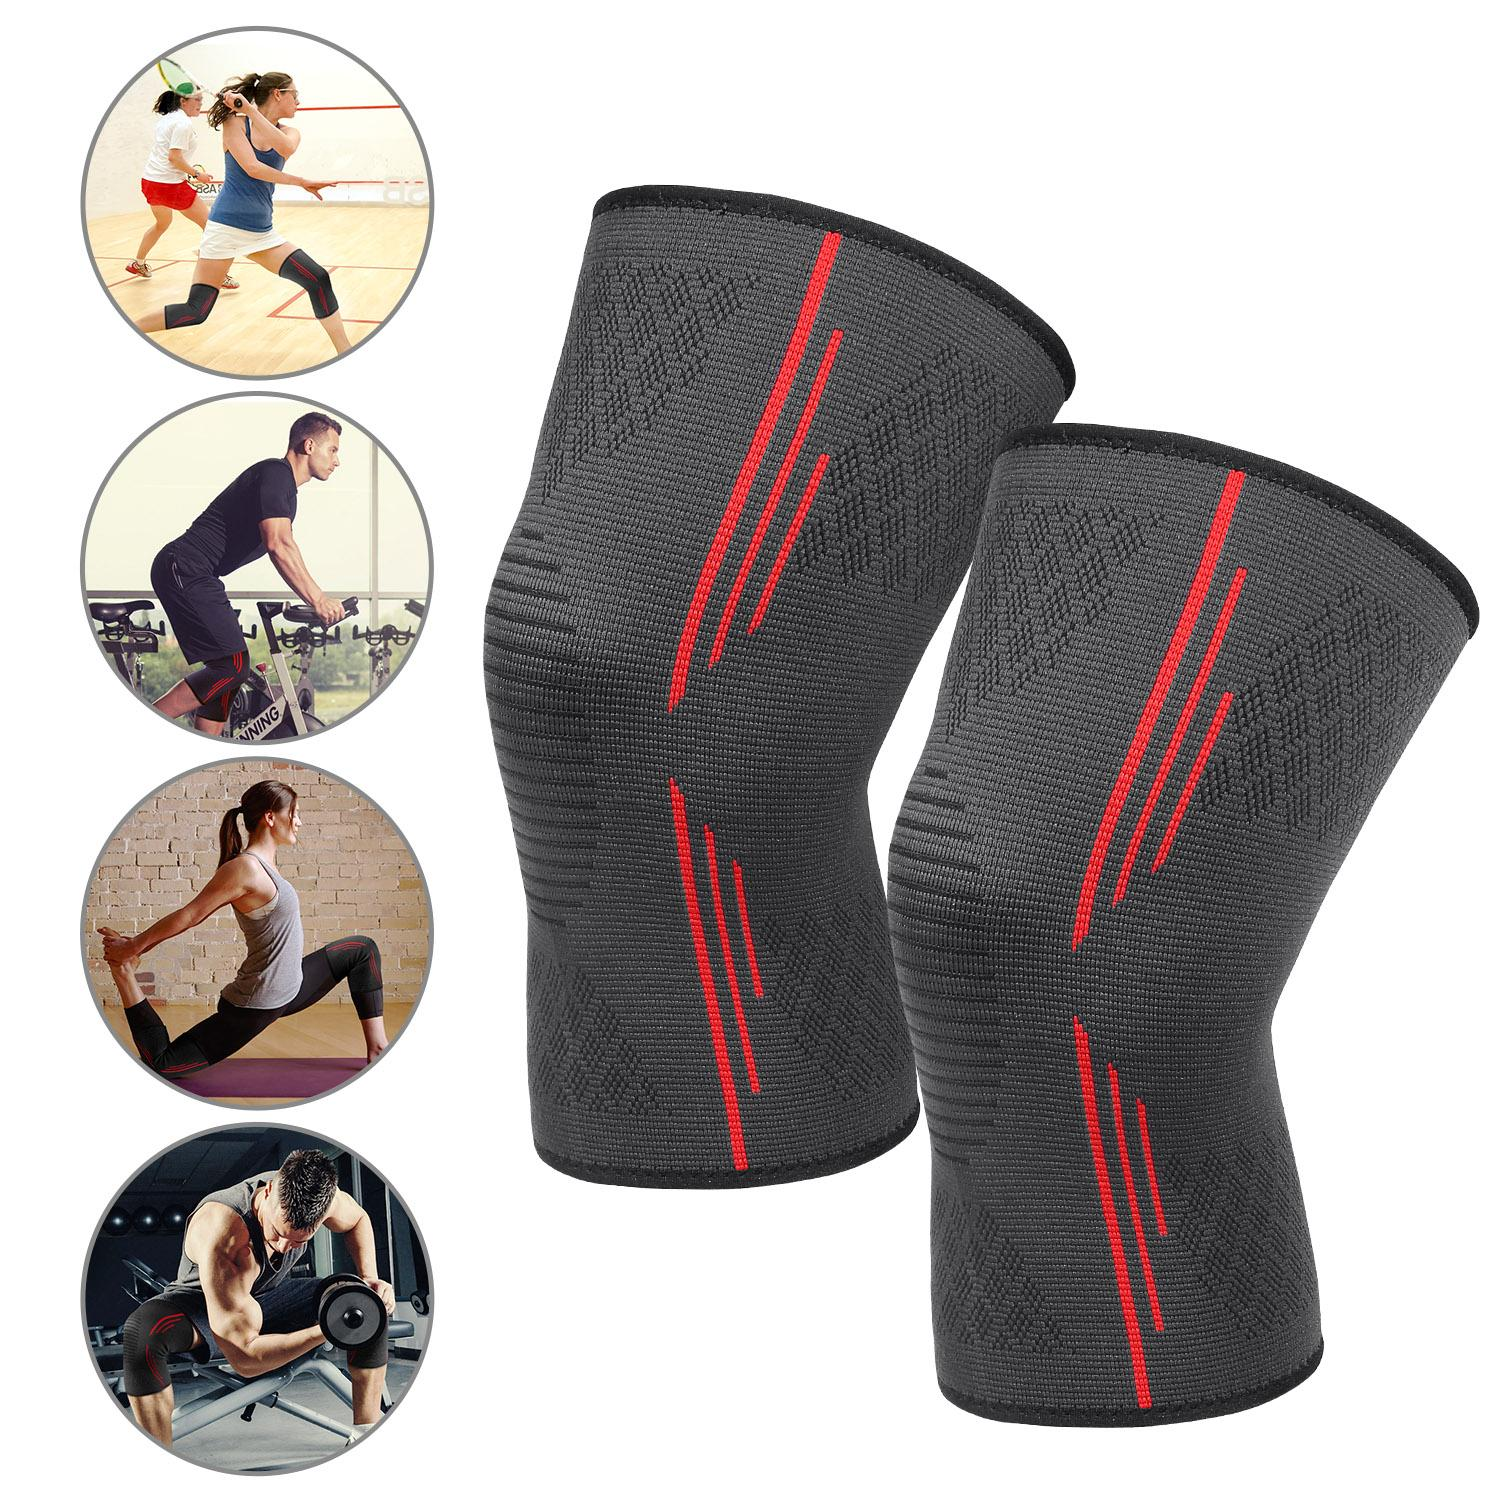 30f8595cee HOMPO Compression Knee Support Brace & Orthosis Sleeves Breathable Anti  Slip Gym Sports Running Jogging Guard